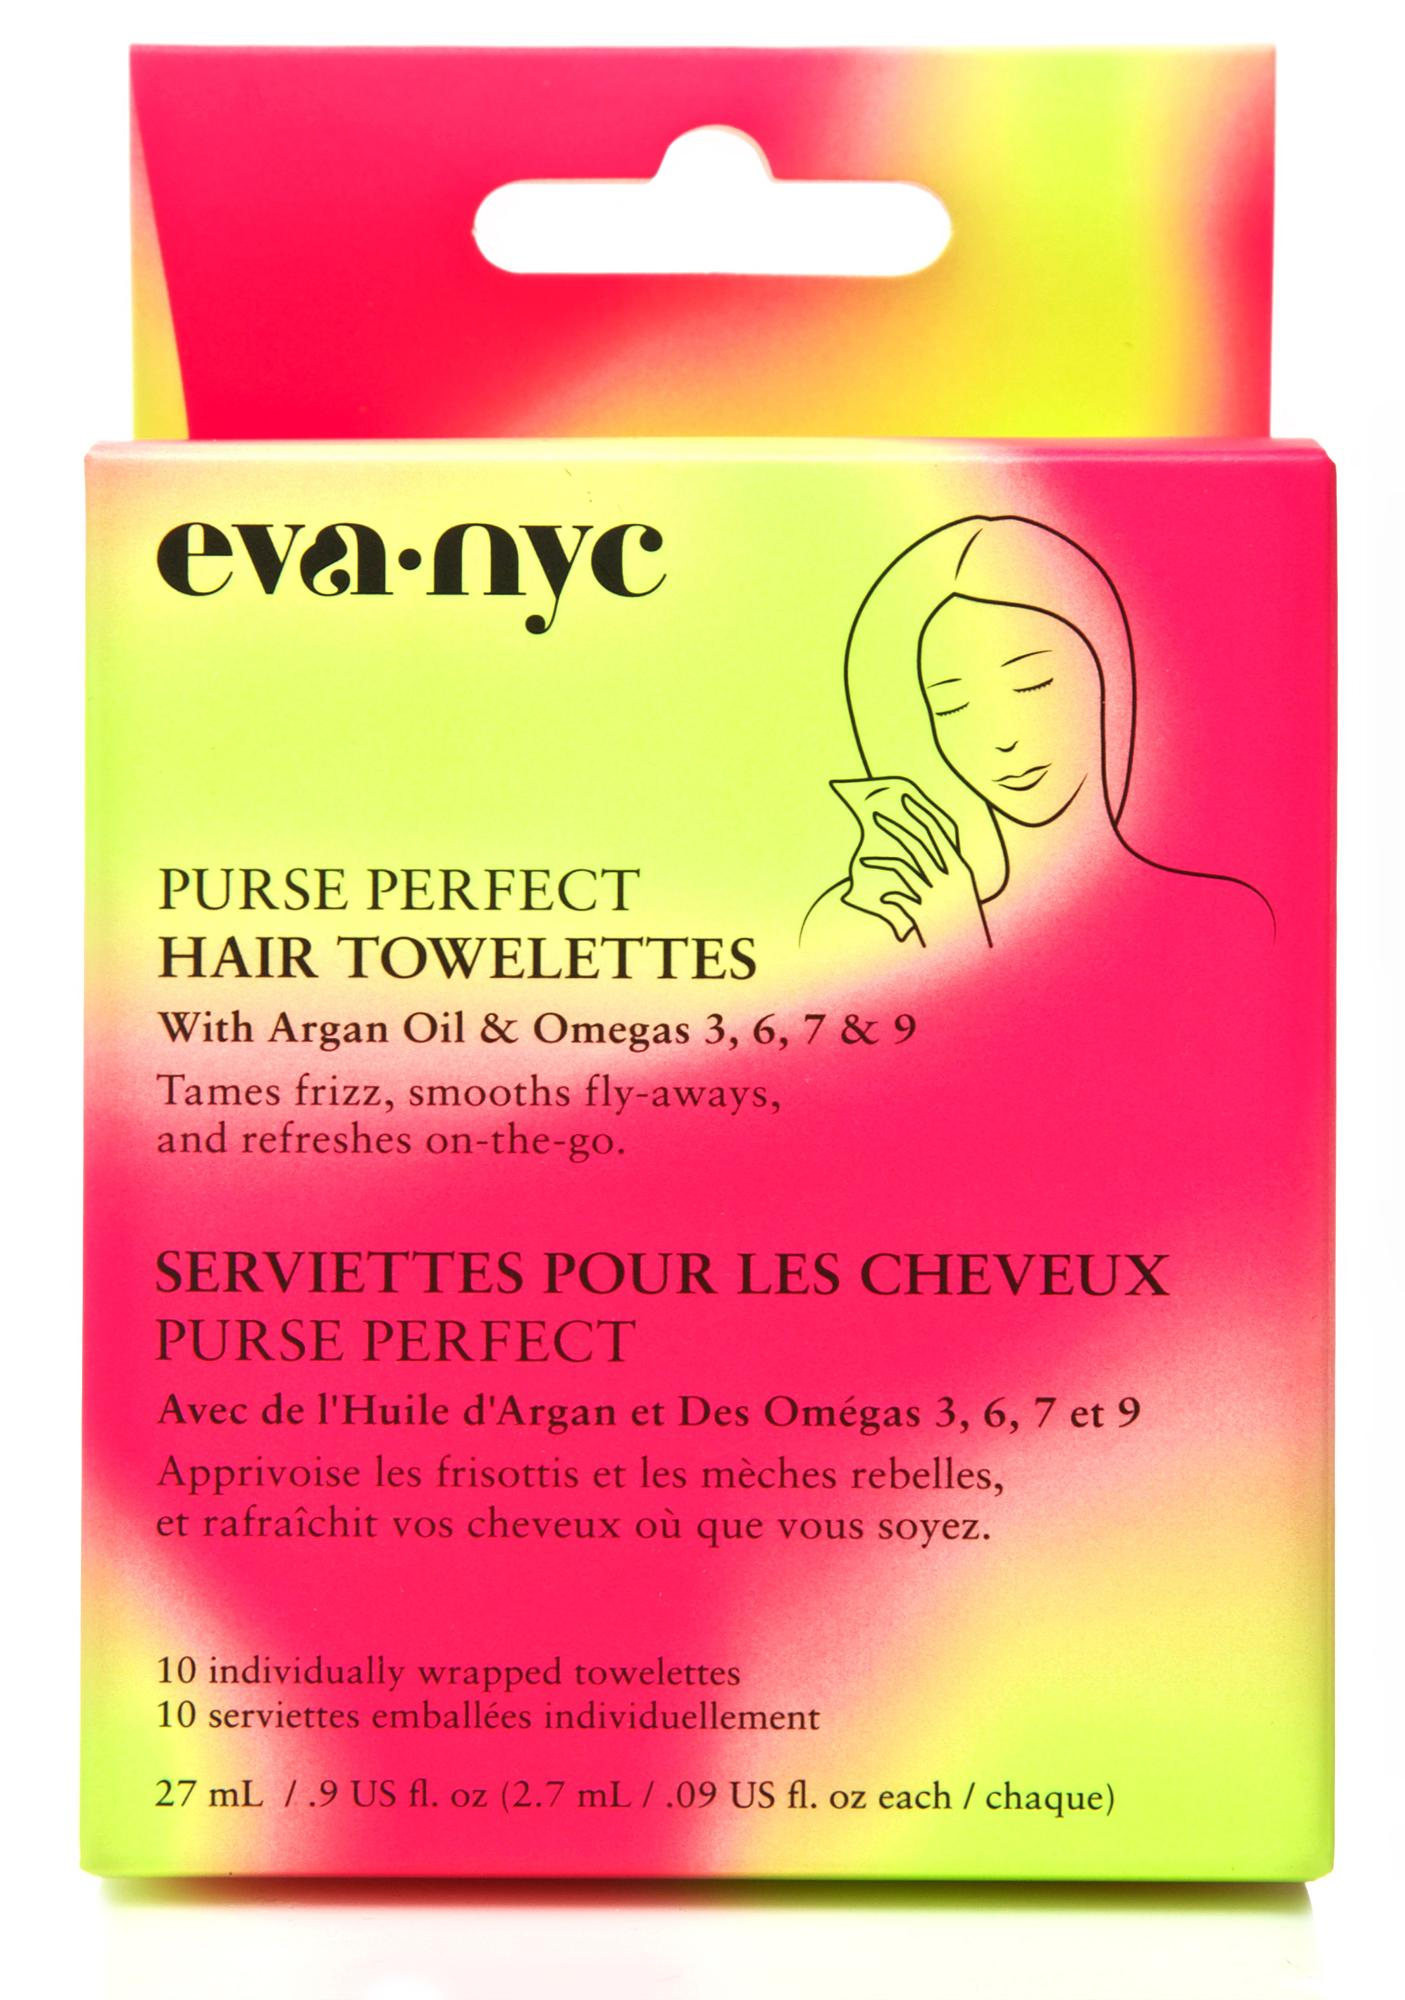 Eva NYC Purse Perfect Hair Towelettes